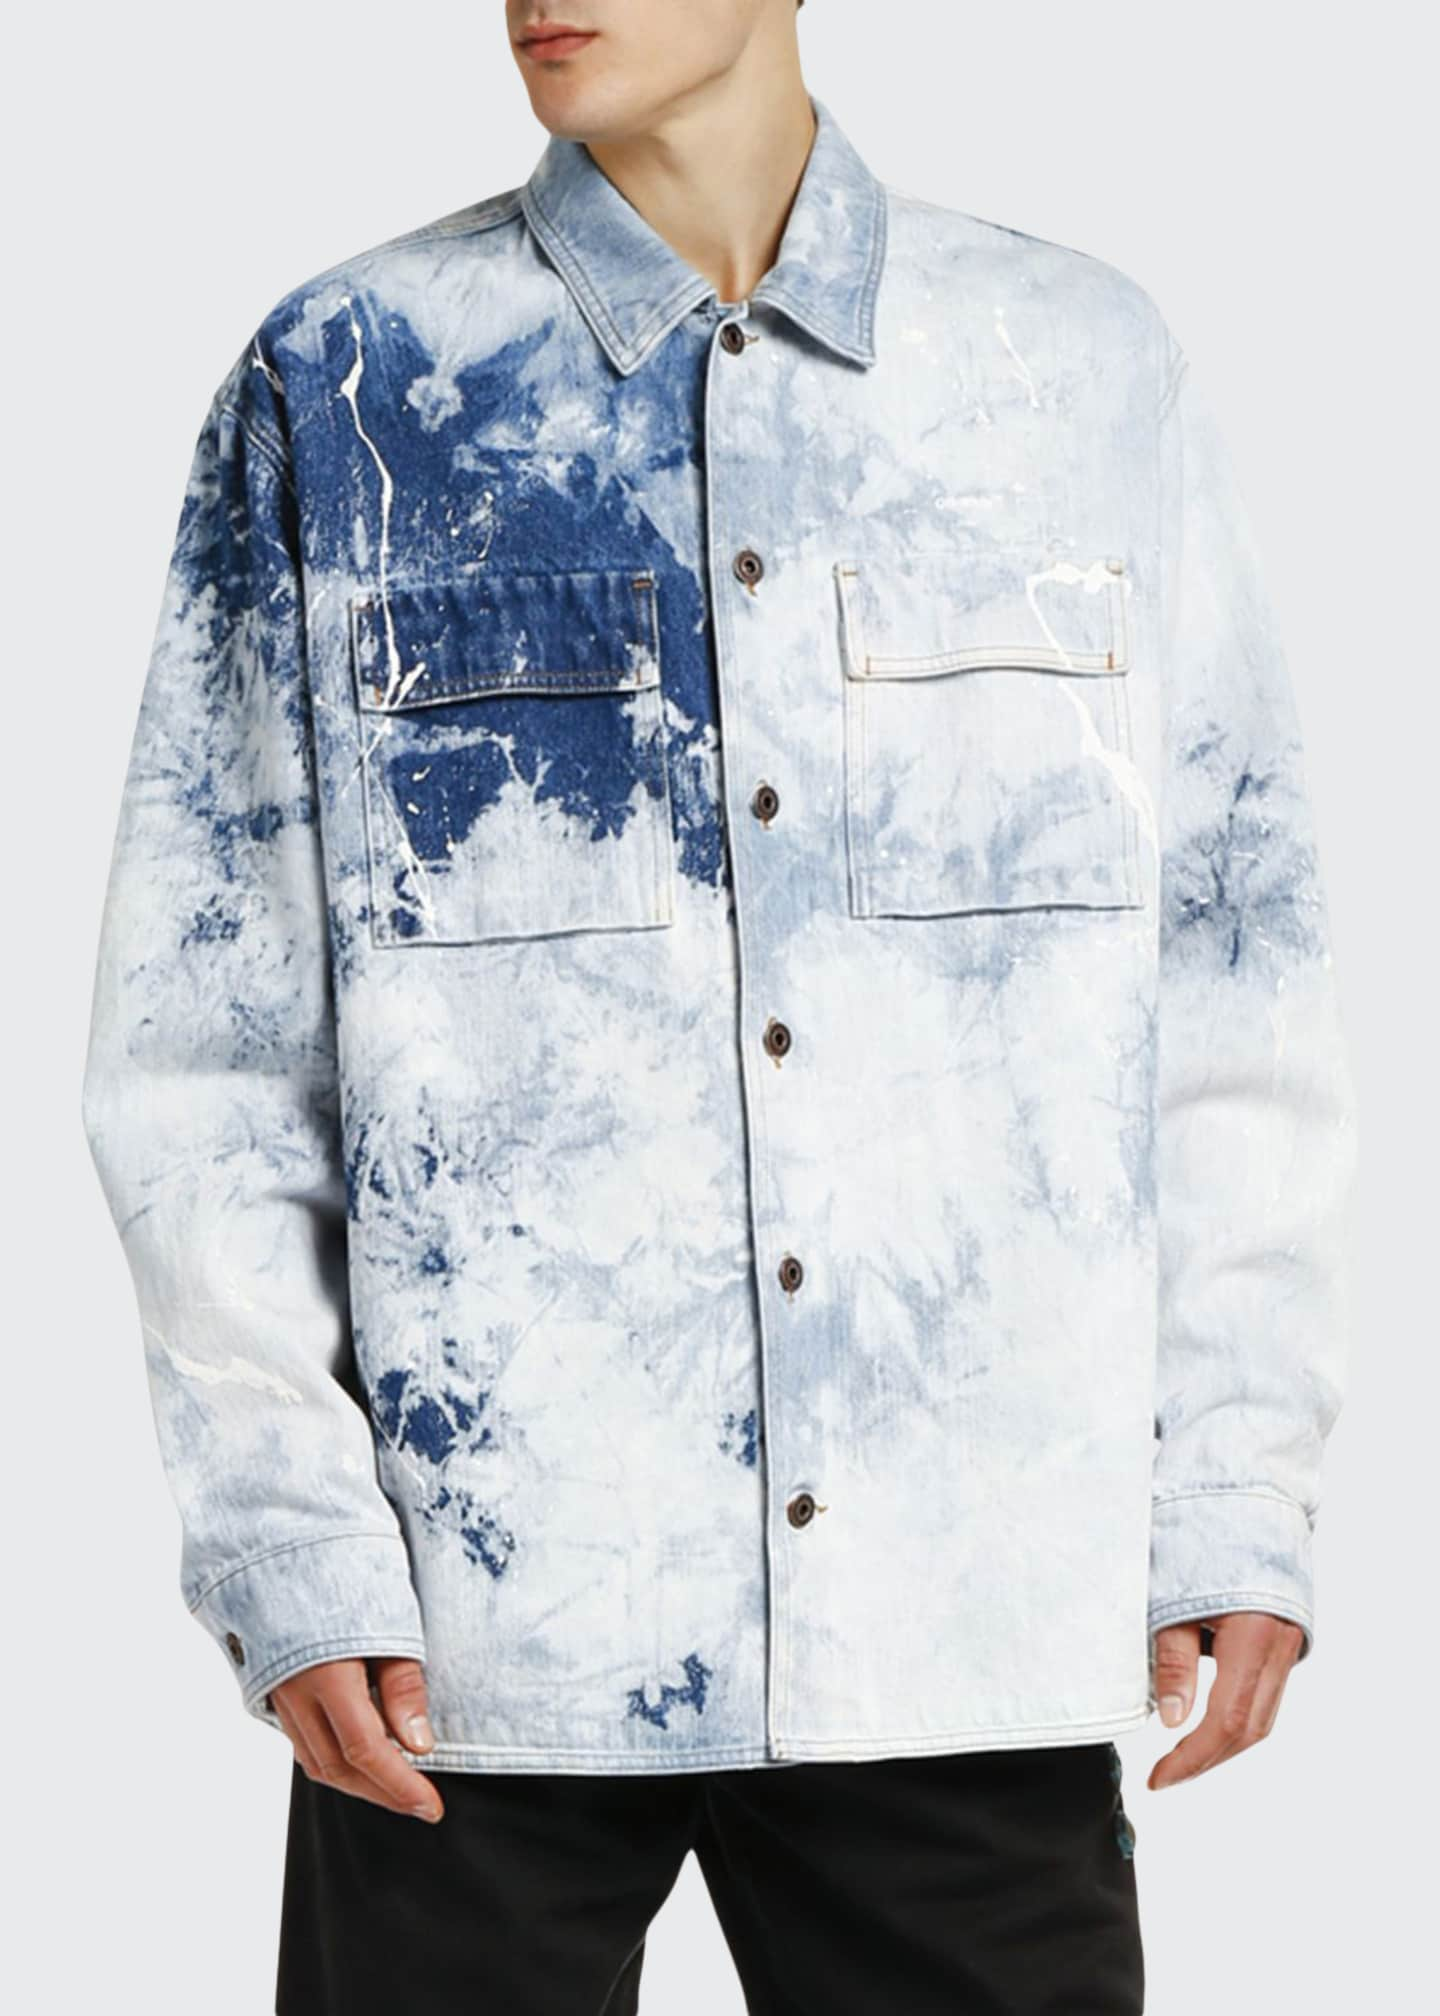 Off-White Men's Arrow Oversize Bleached Denim Shirt